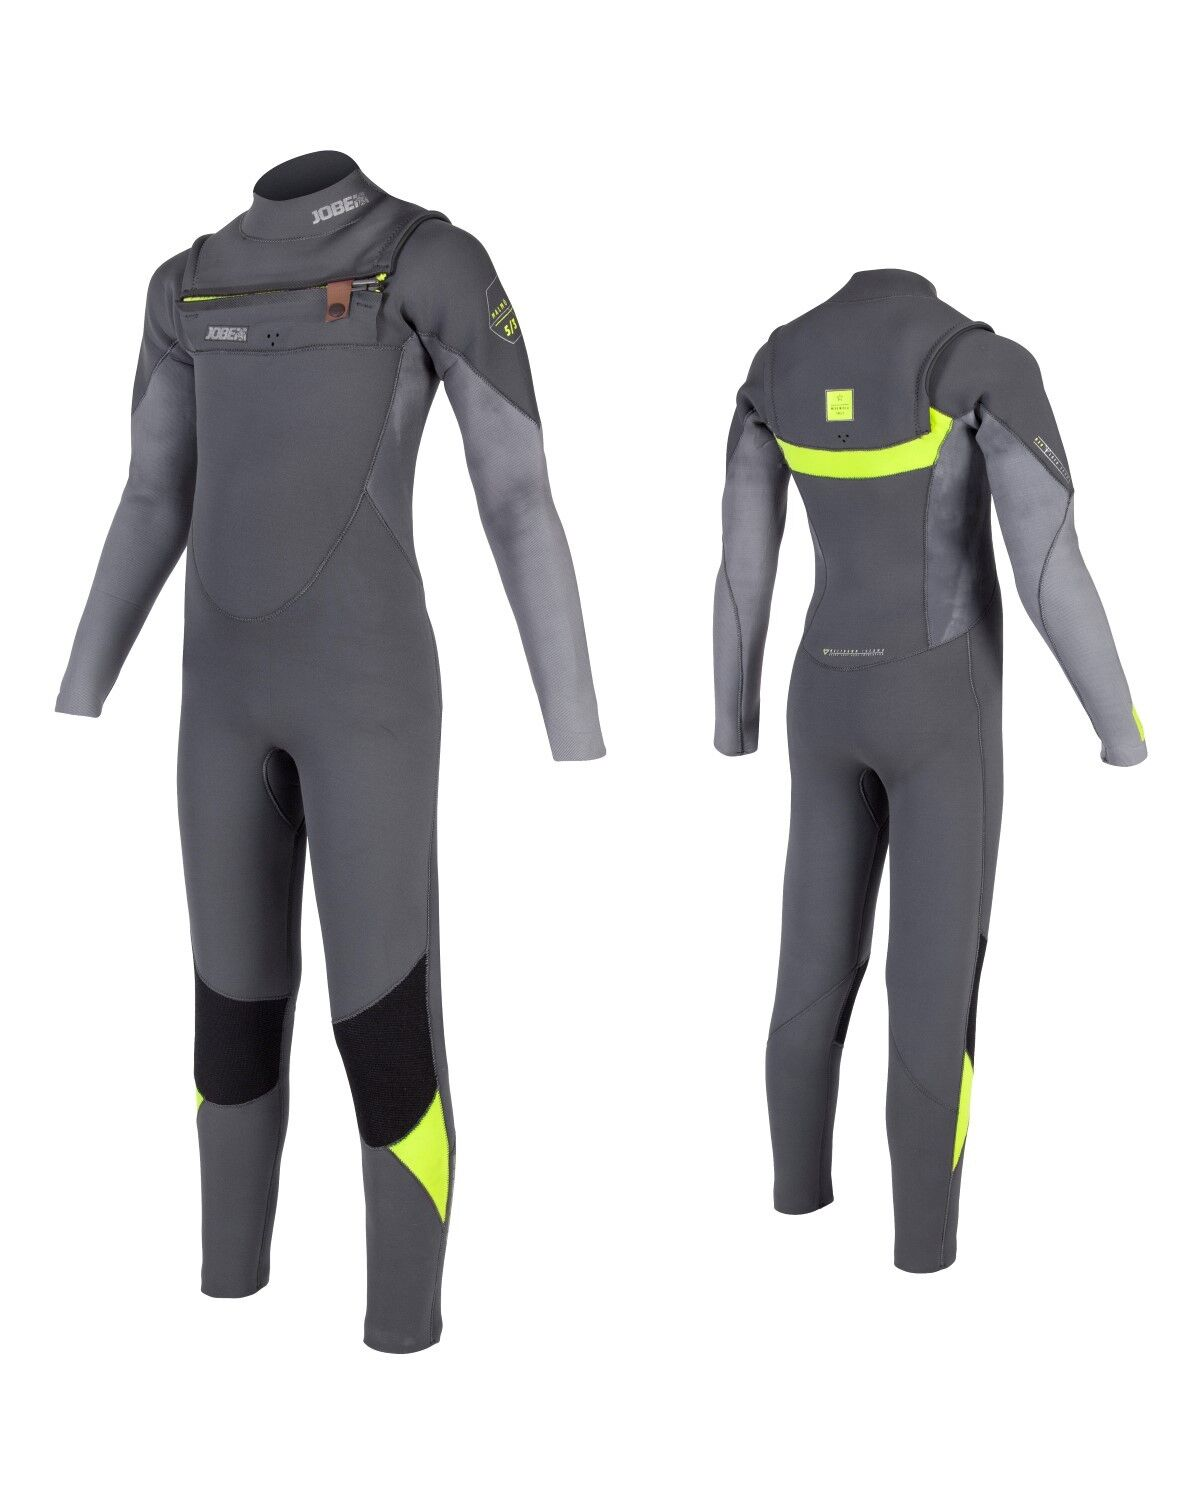 Jobe  Malmo FS 5 3mm Wet Suit  ldren's Kitesurfing Waveriding Surfing Rp  first time reply